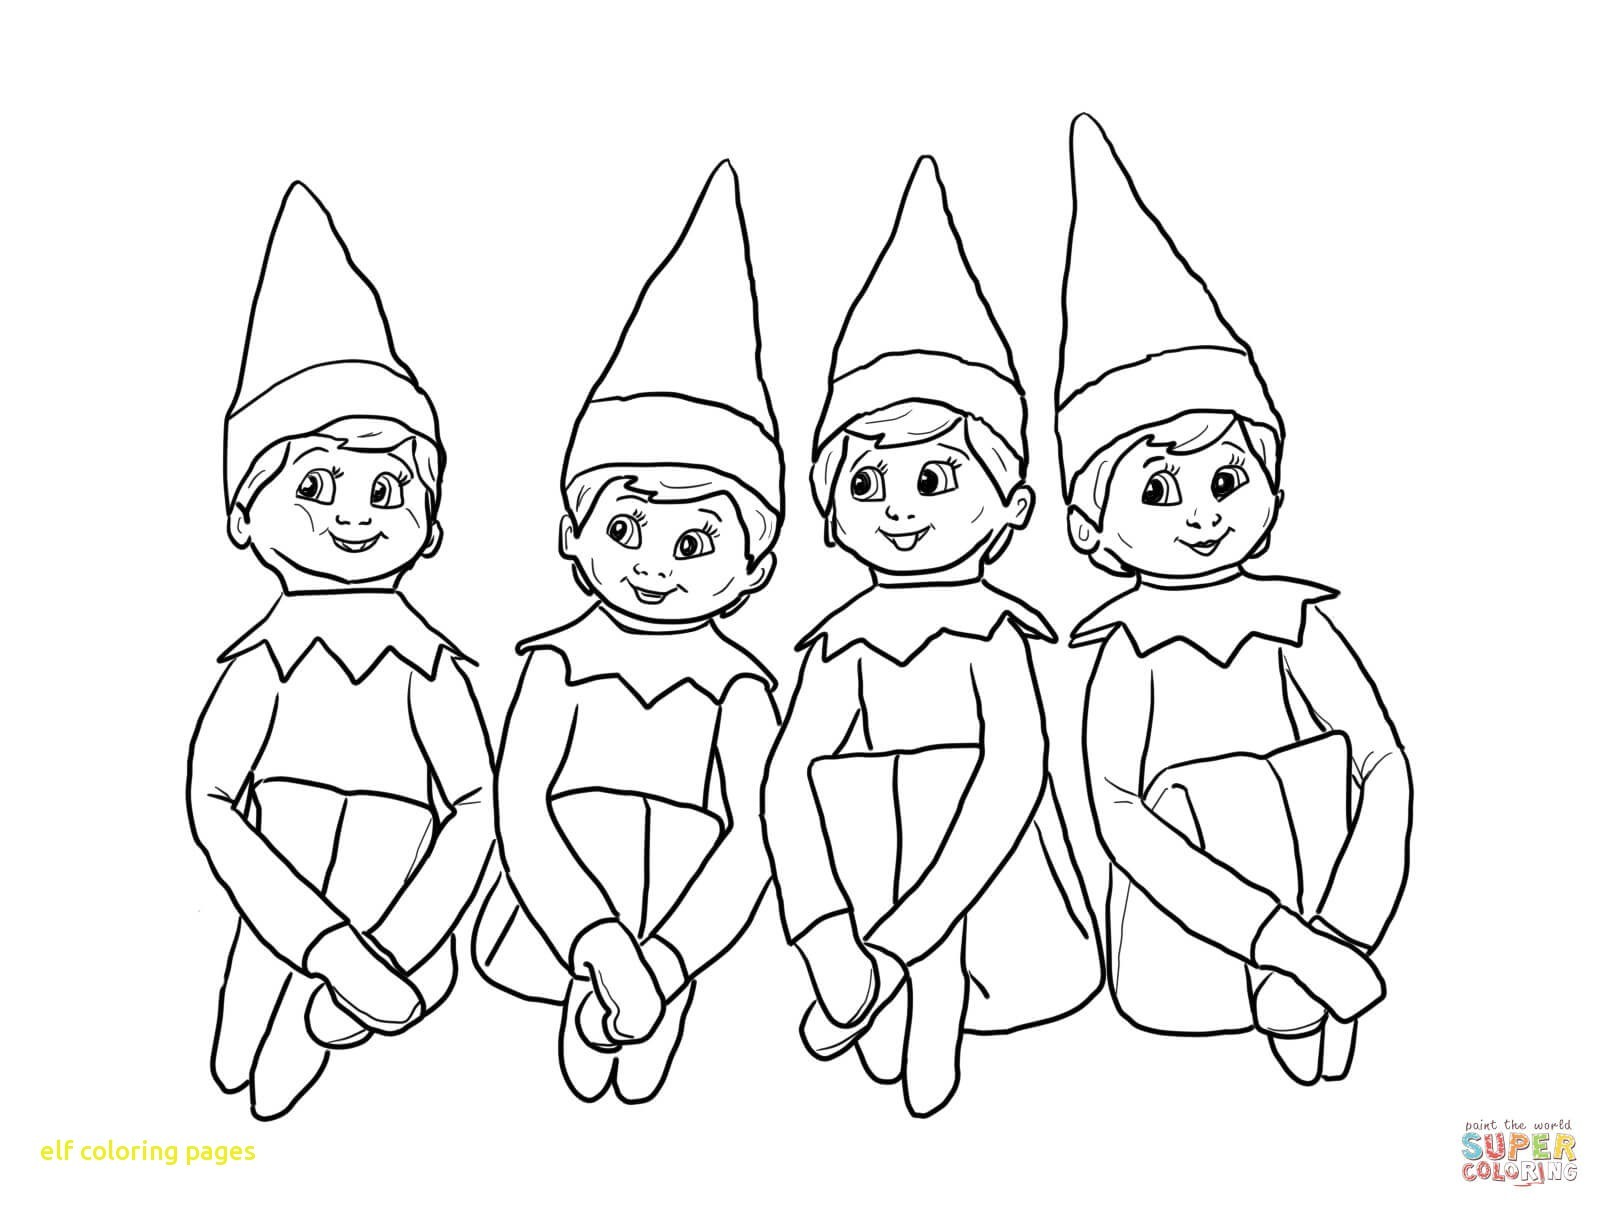 Christmas Coloring Pages Of Elves With Enormous Elf Pictures To Print Adult Free